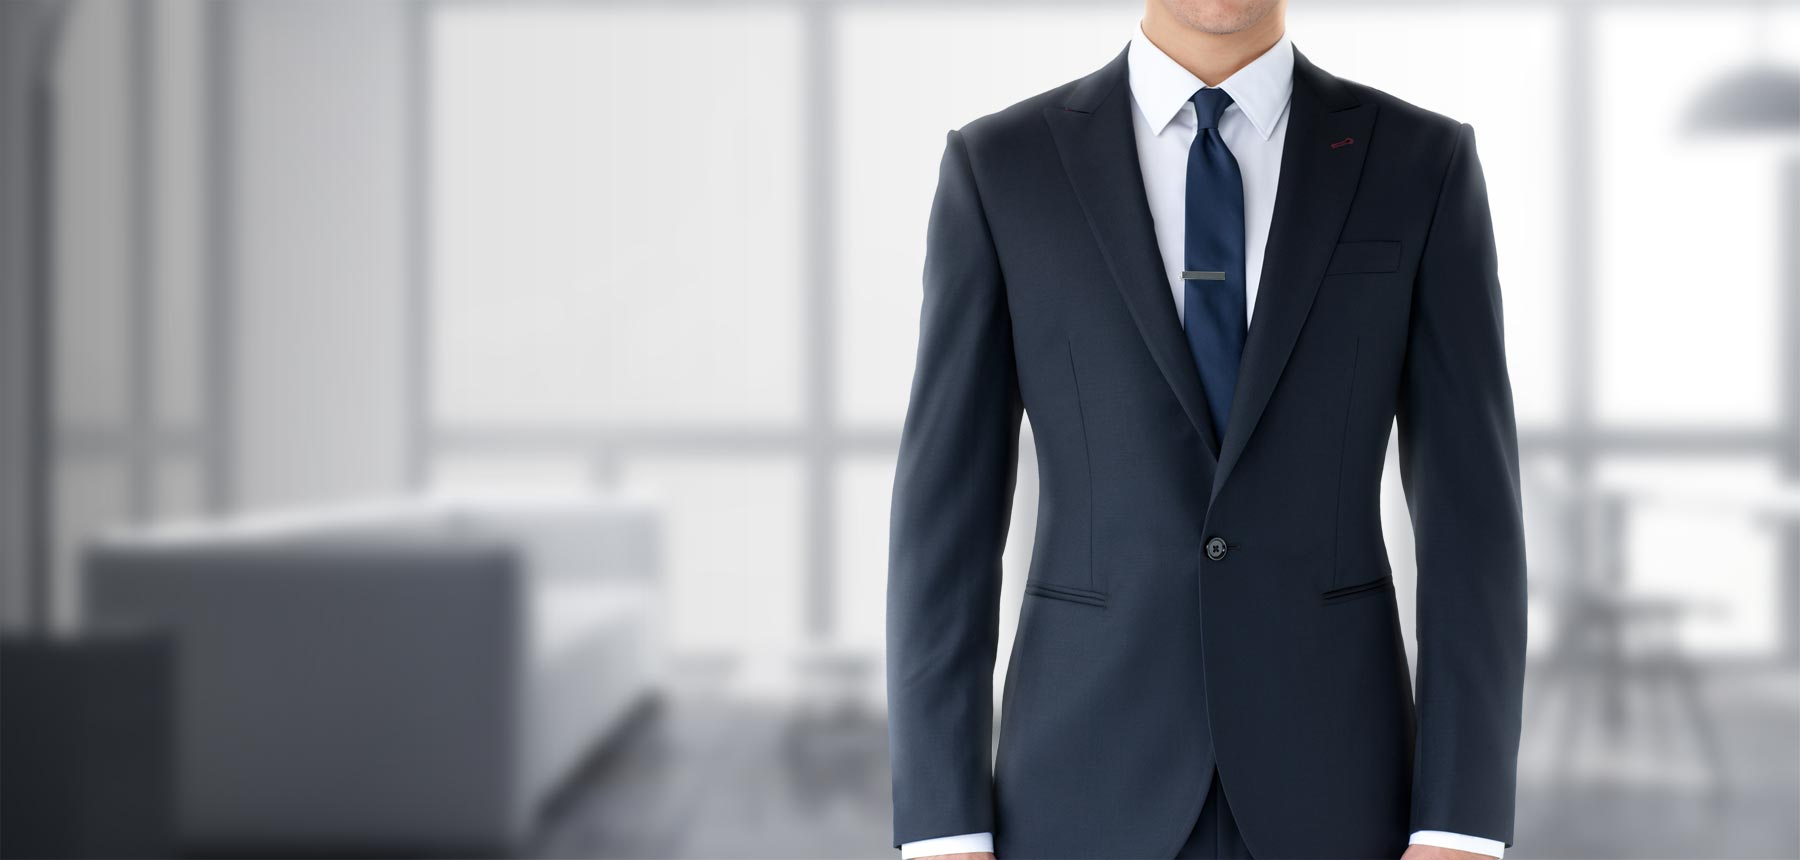 what to wear for firefighter interview